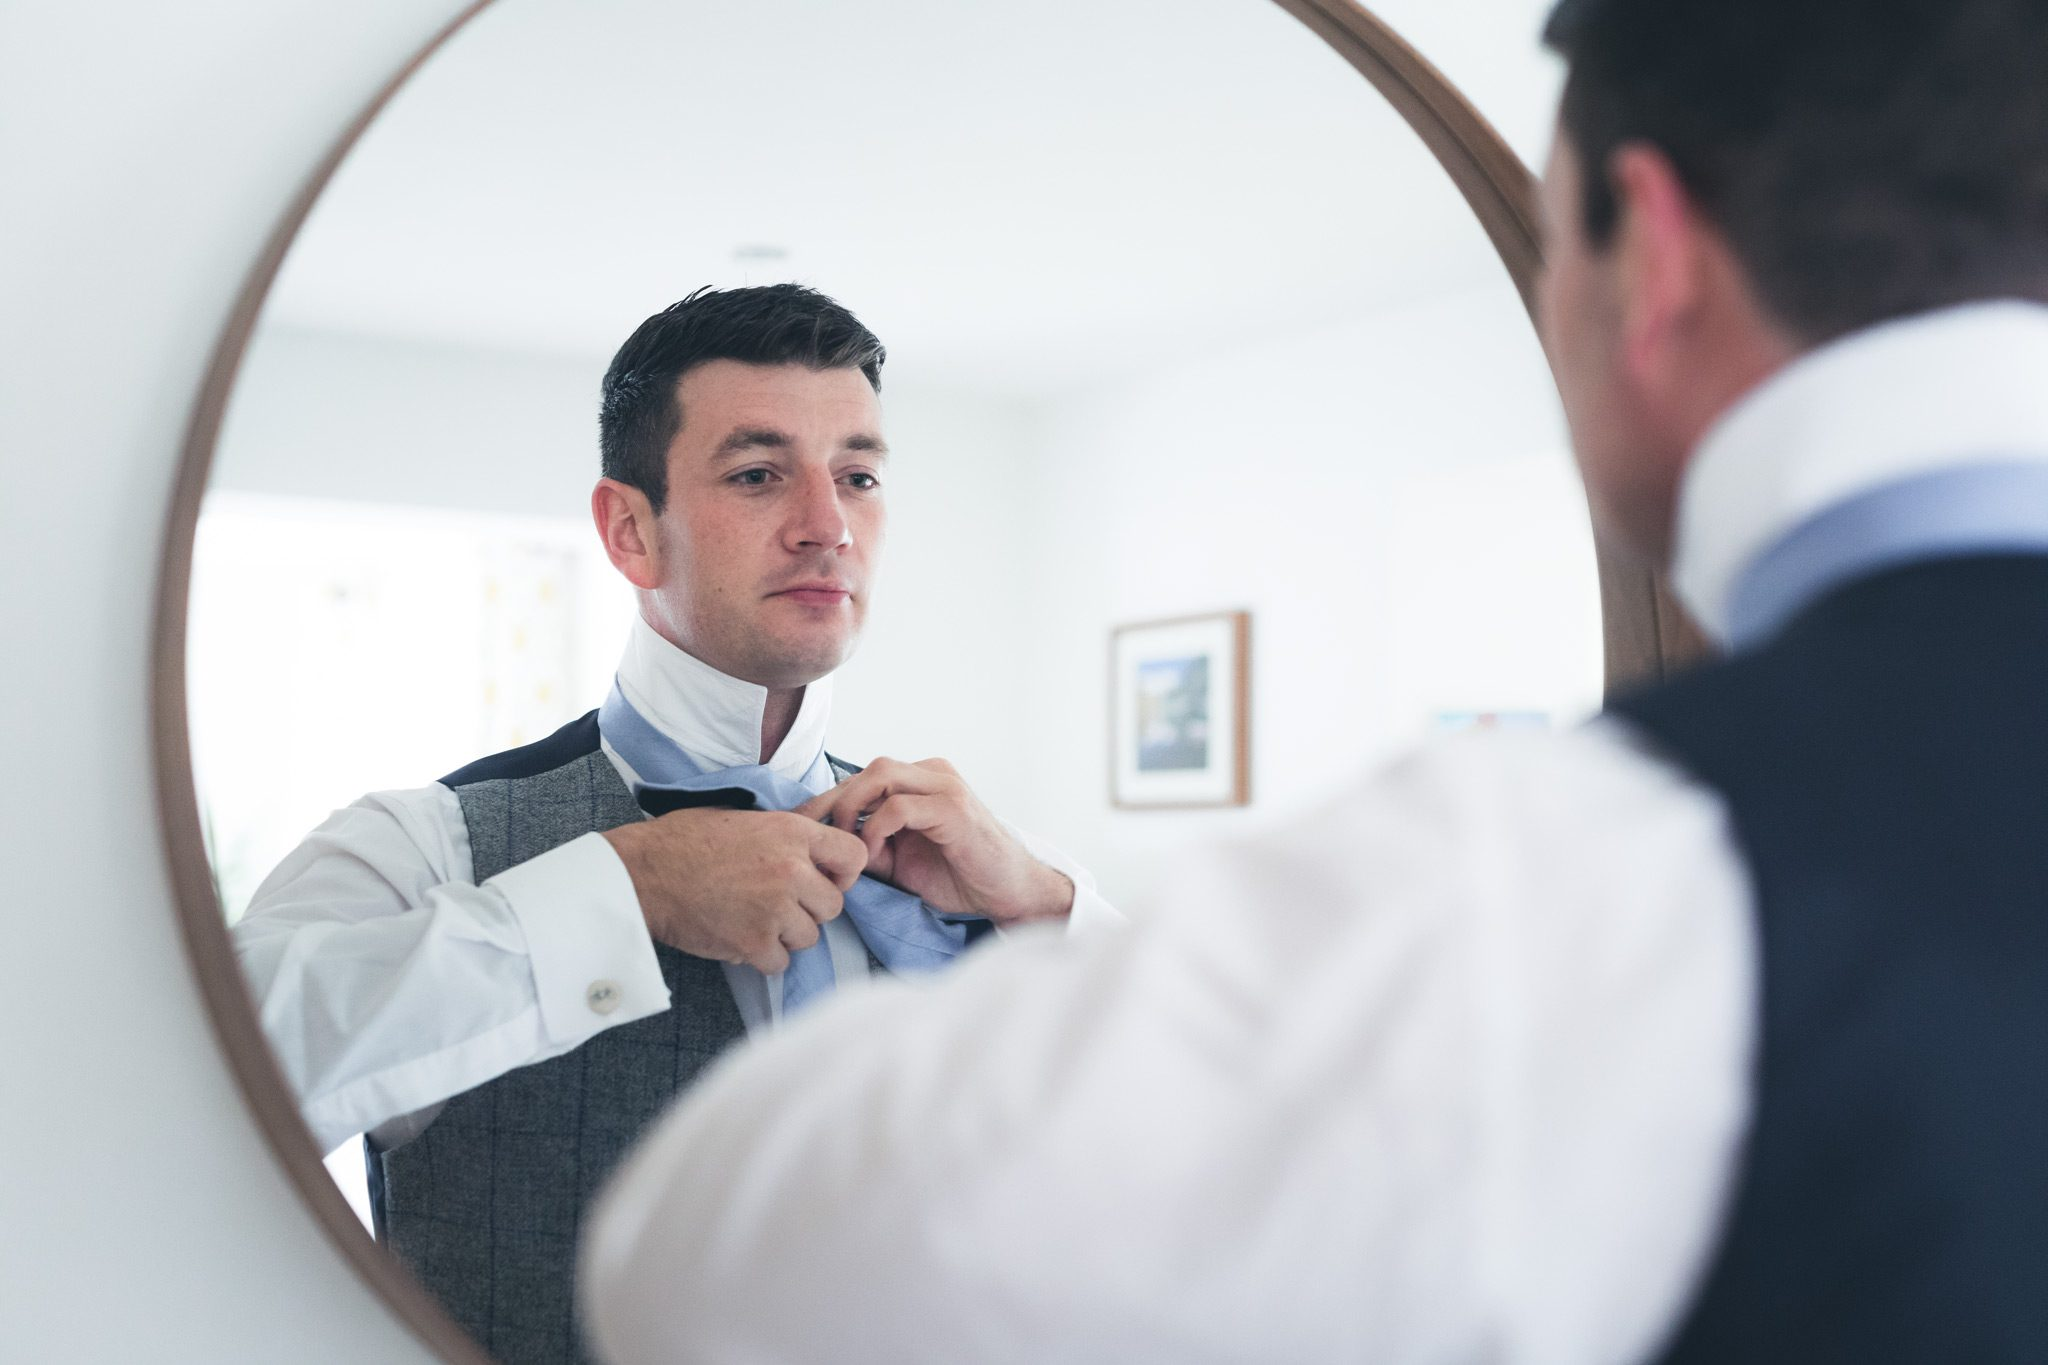 Photo of the groom looking in the mirror